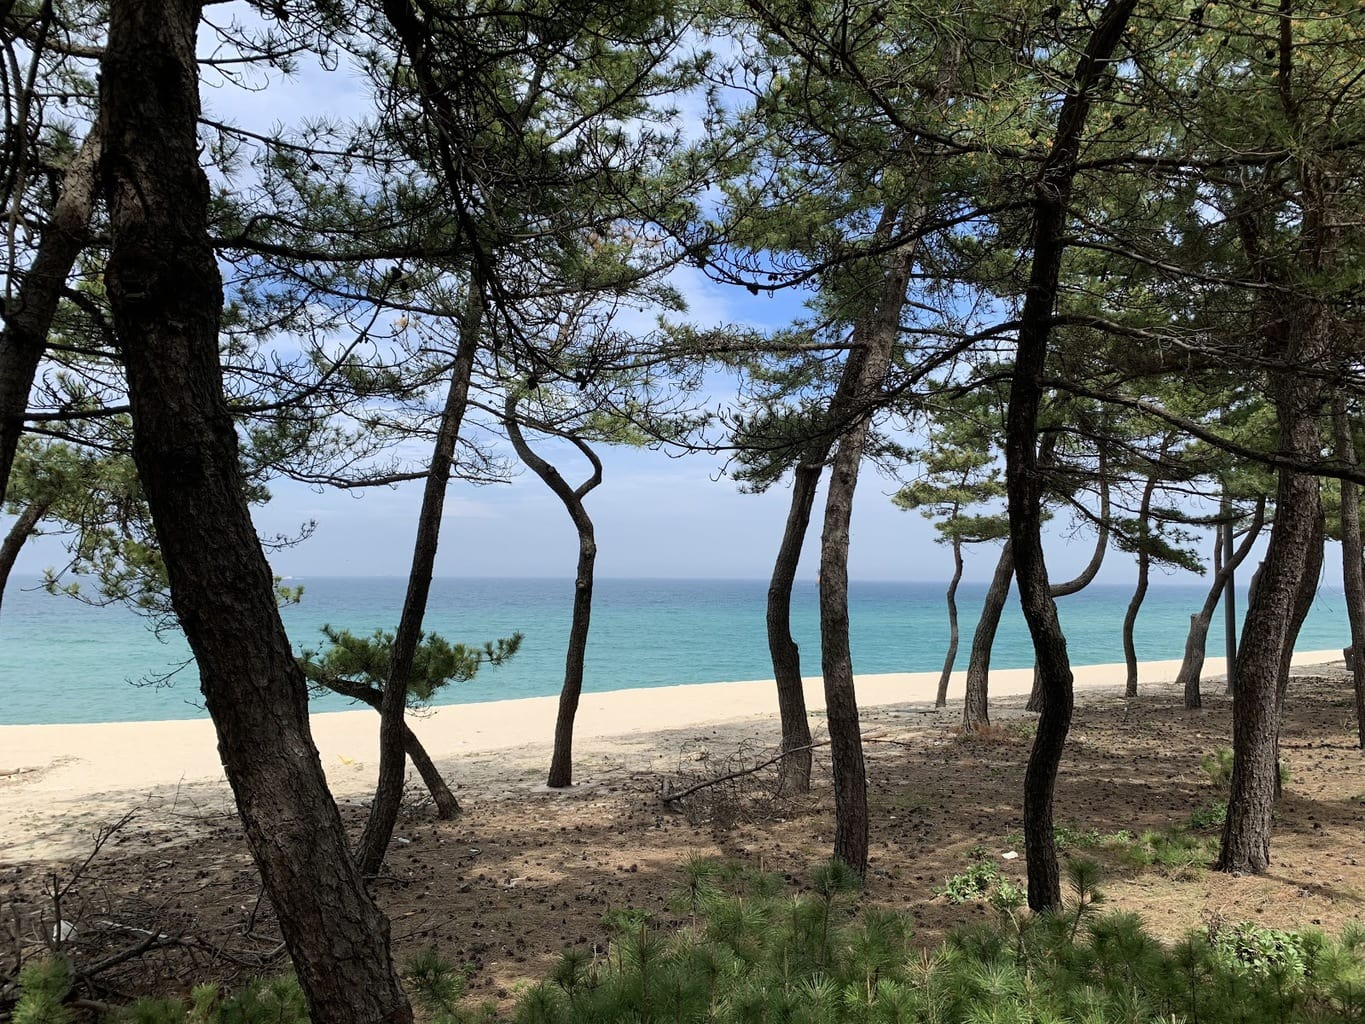 Pine trees on the beaches